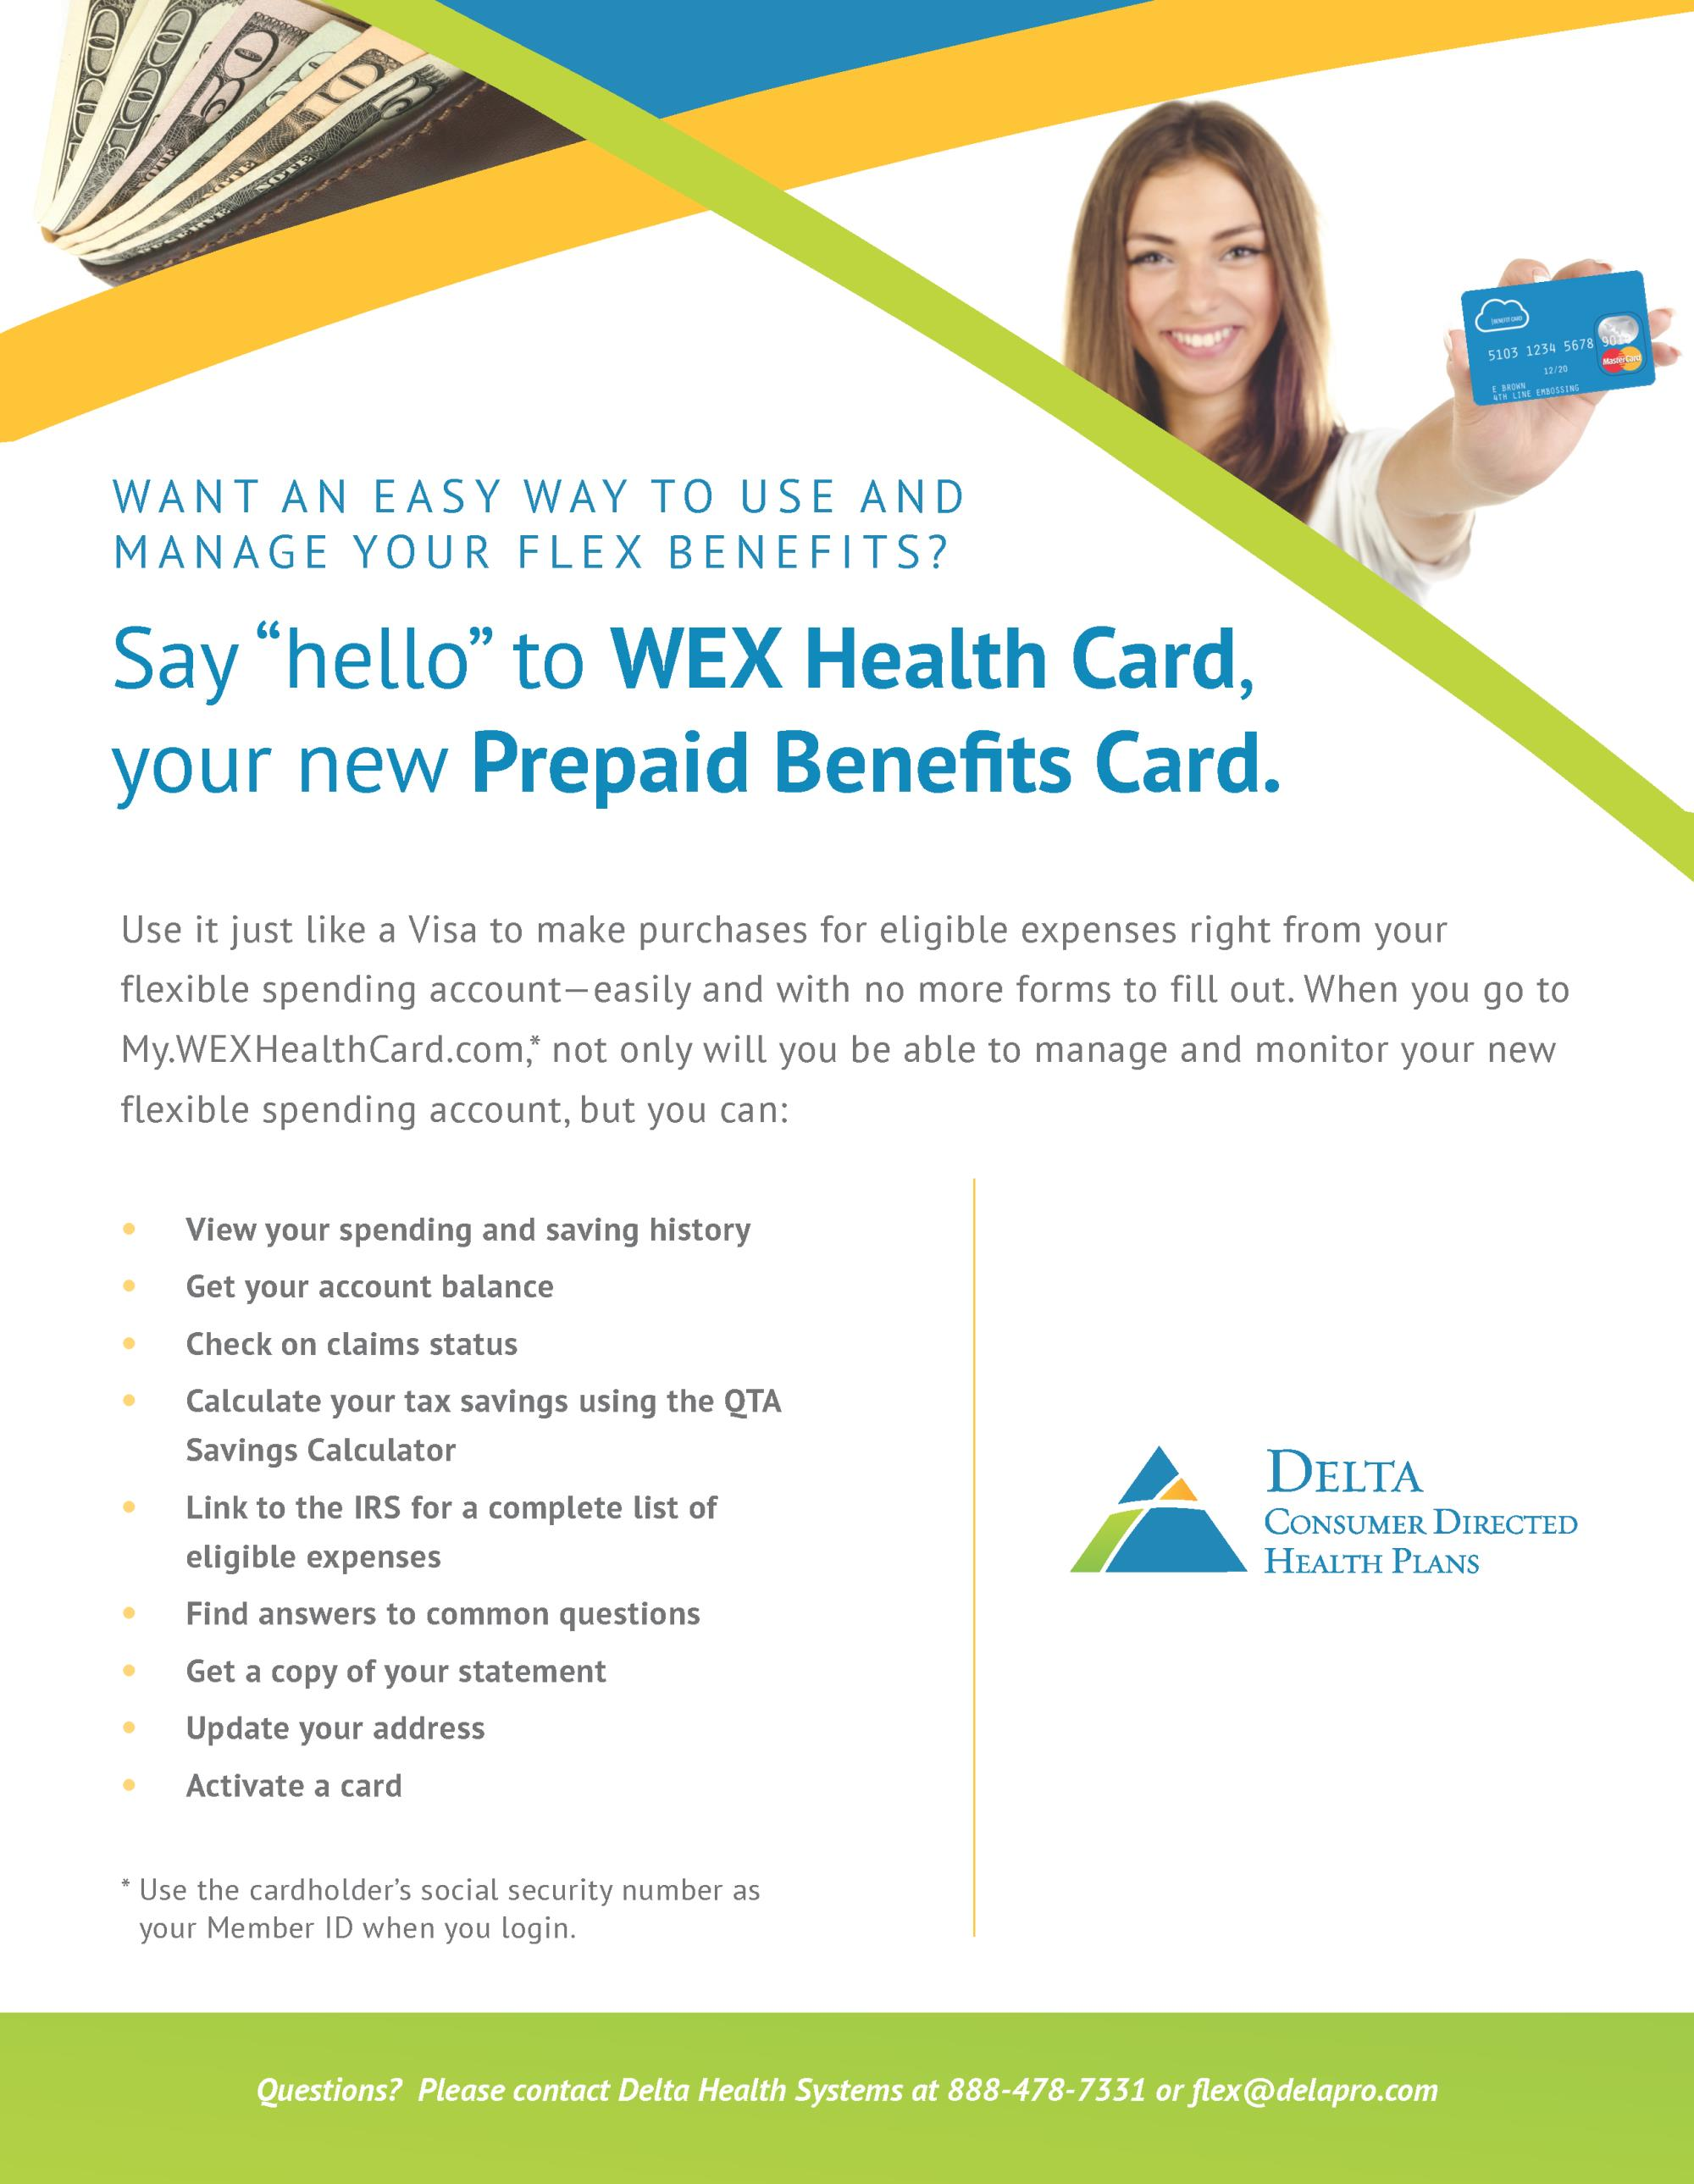 New Prepaid Benefits Card for 2018